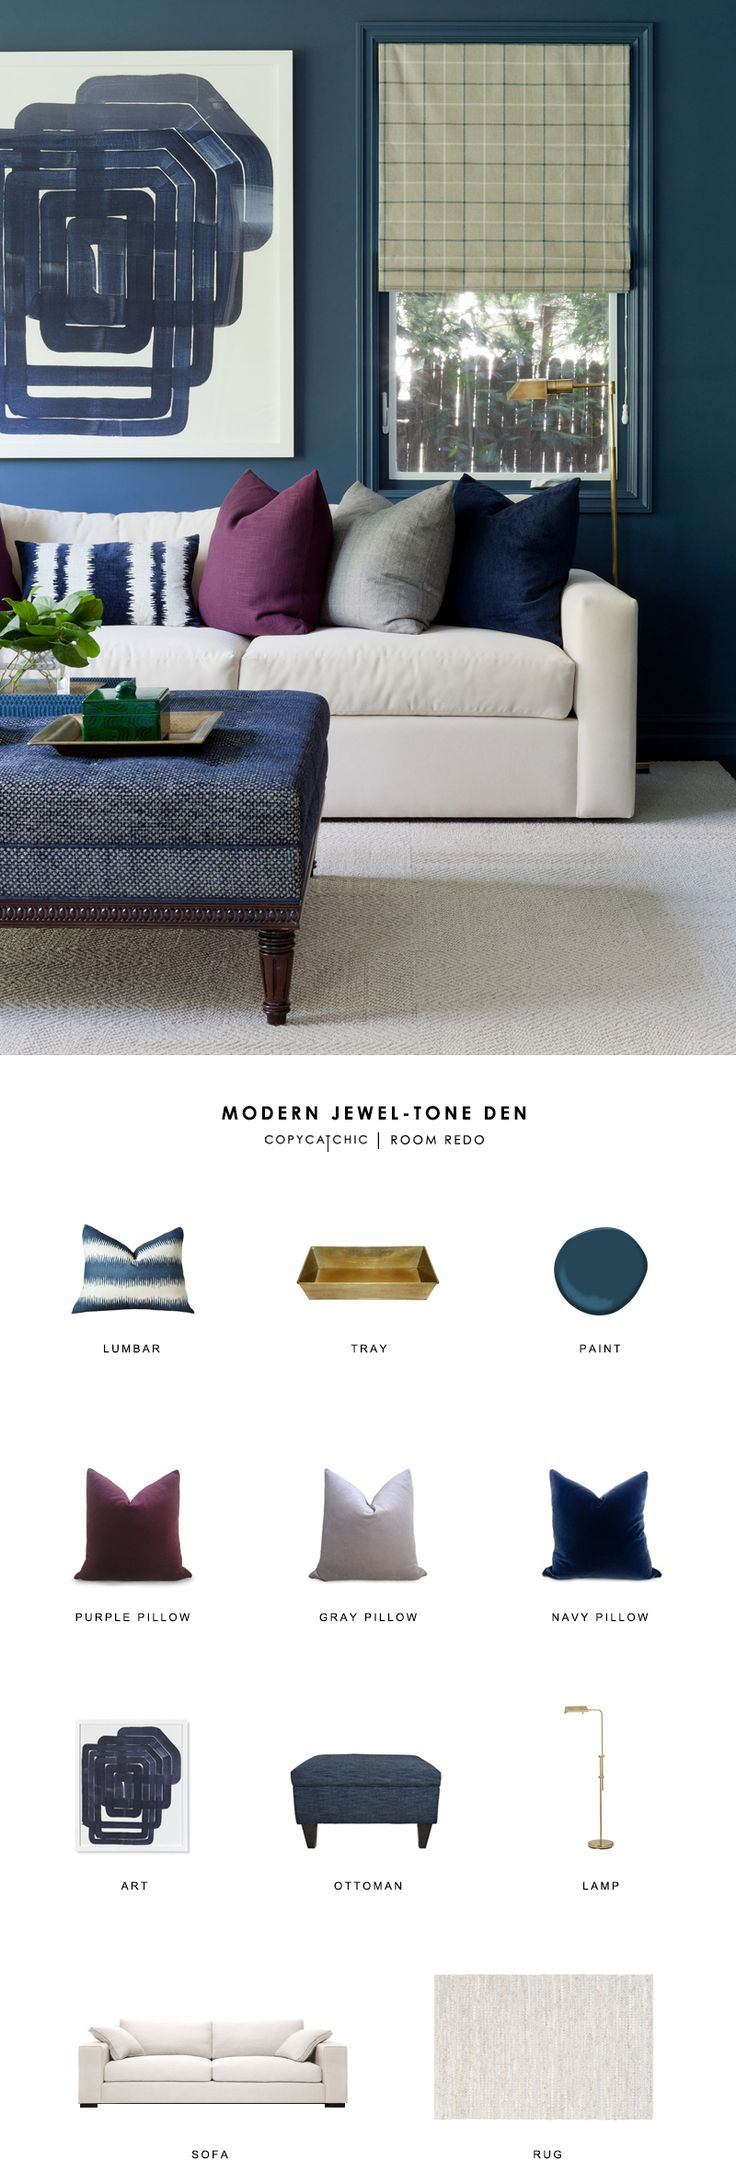 A jewel-toned modern living room by Jenn Feldman Designs gets recreated for less by copycatchic luxe living for less budget home decor and design